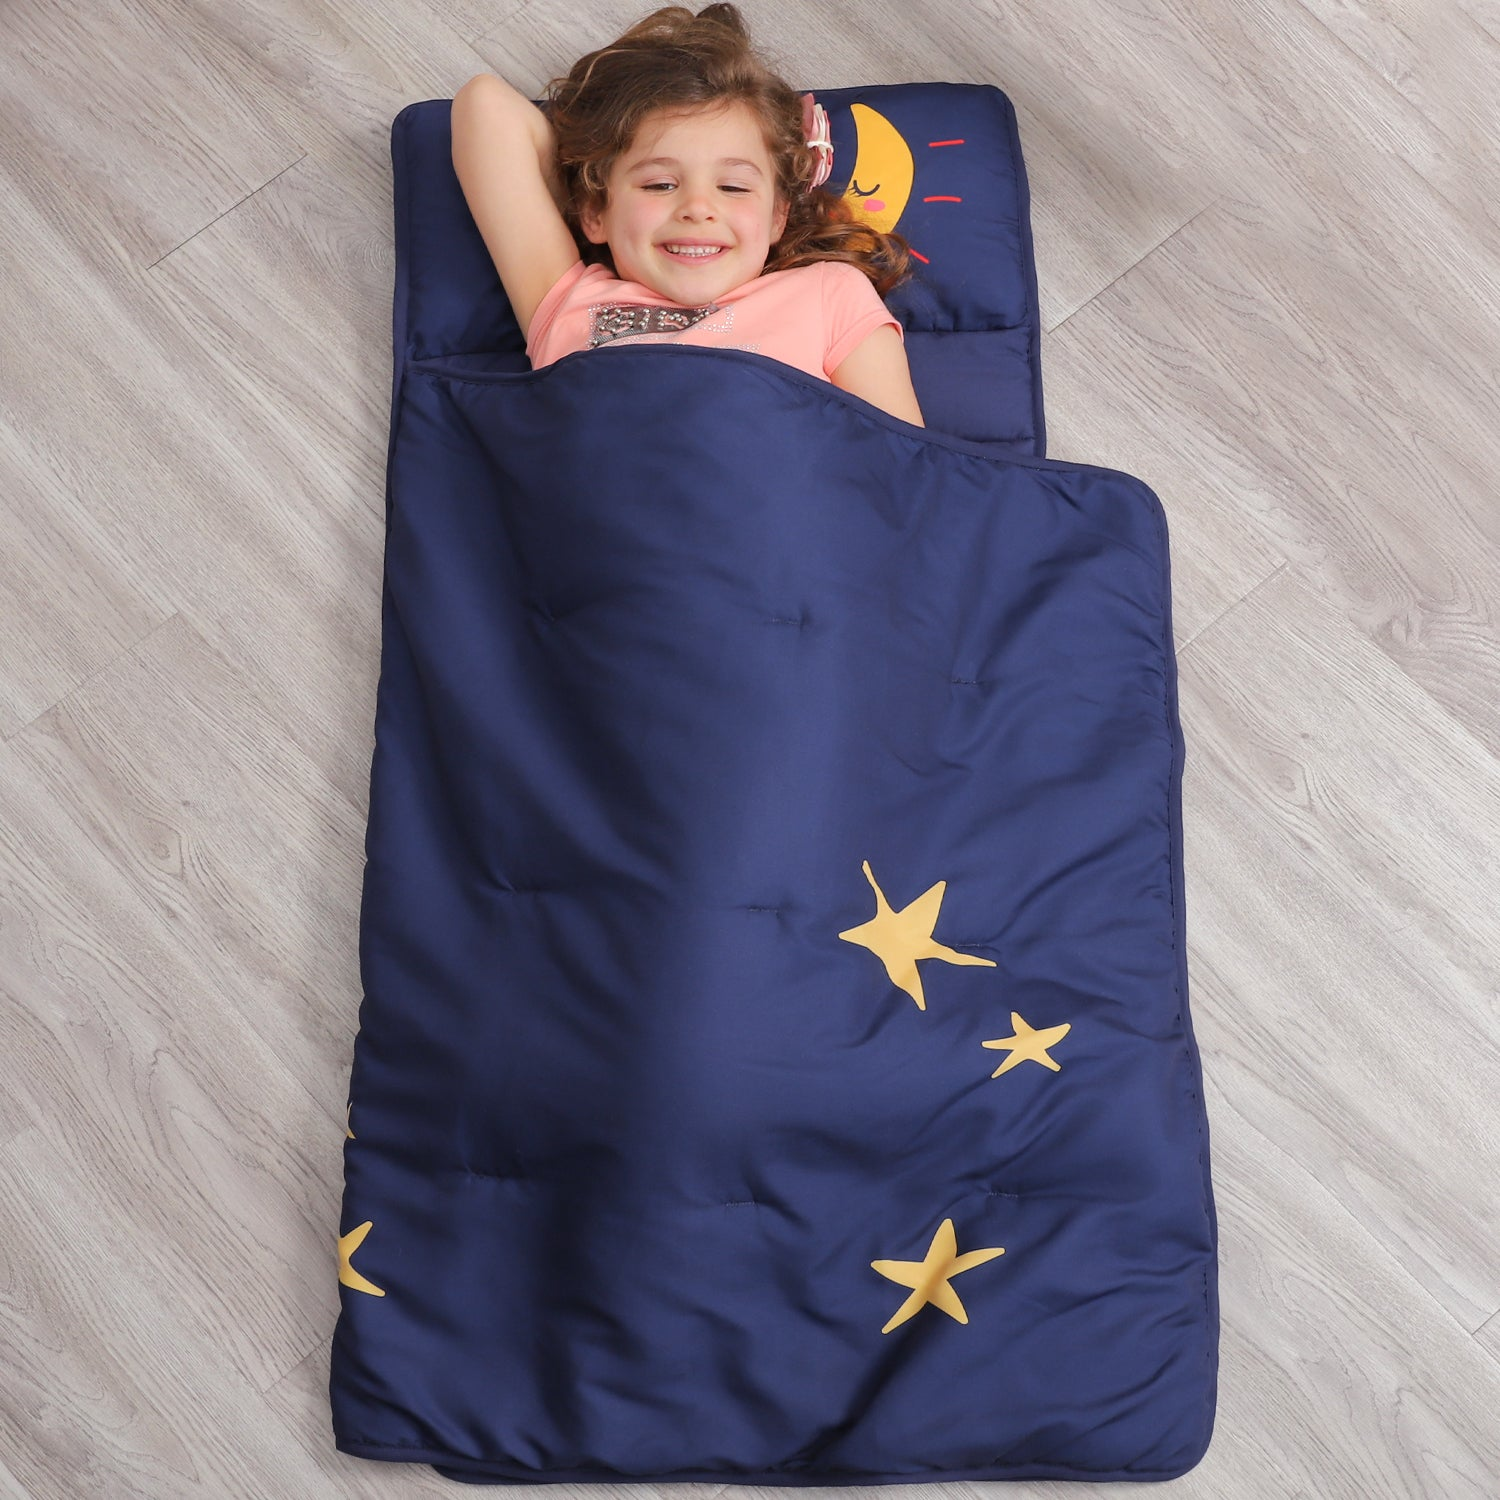 Toddler Nap Mat with Pillow for Kids - Navy Moon And Star